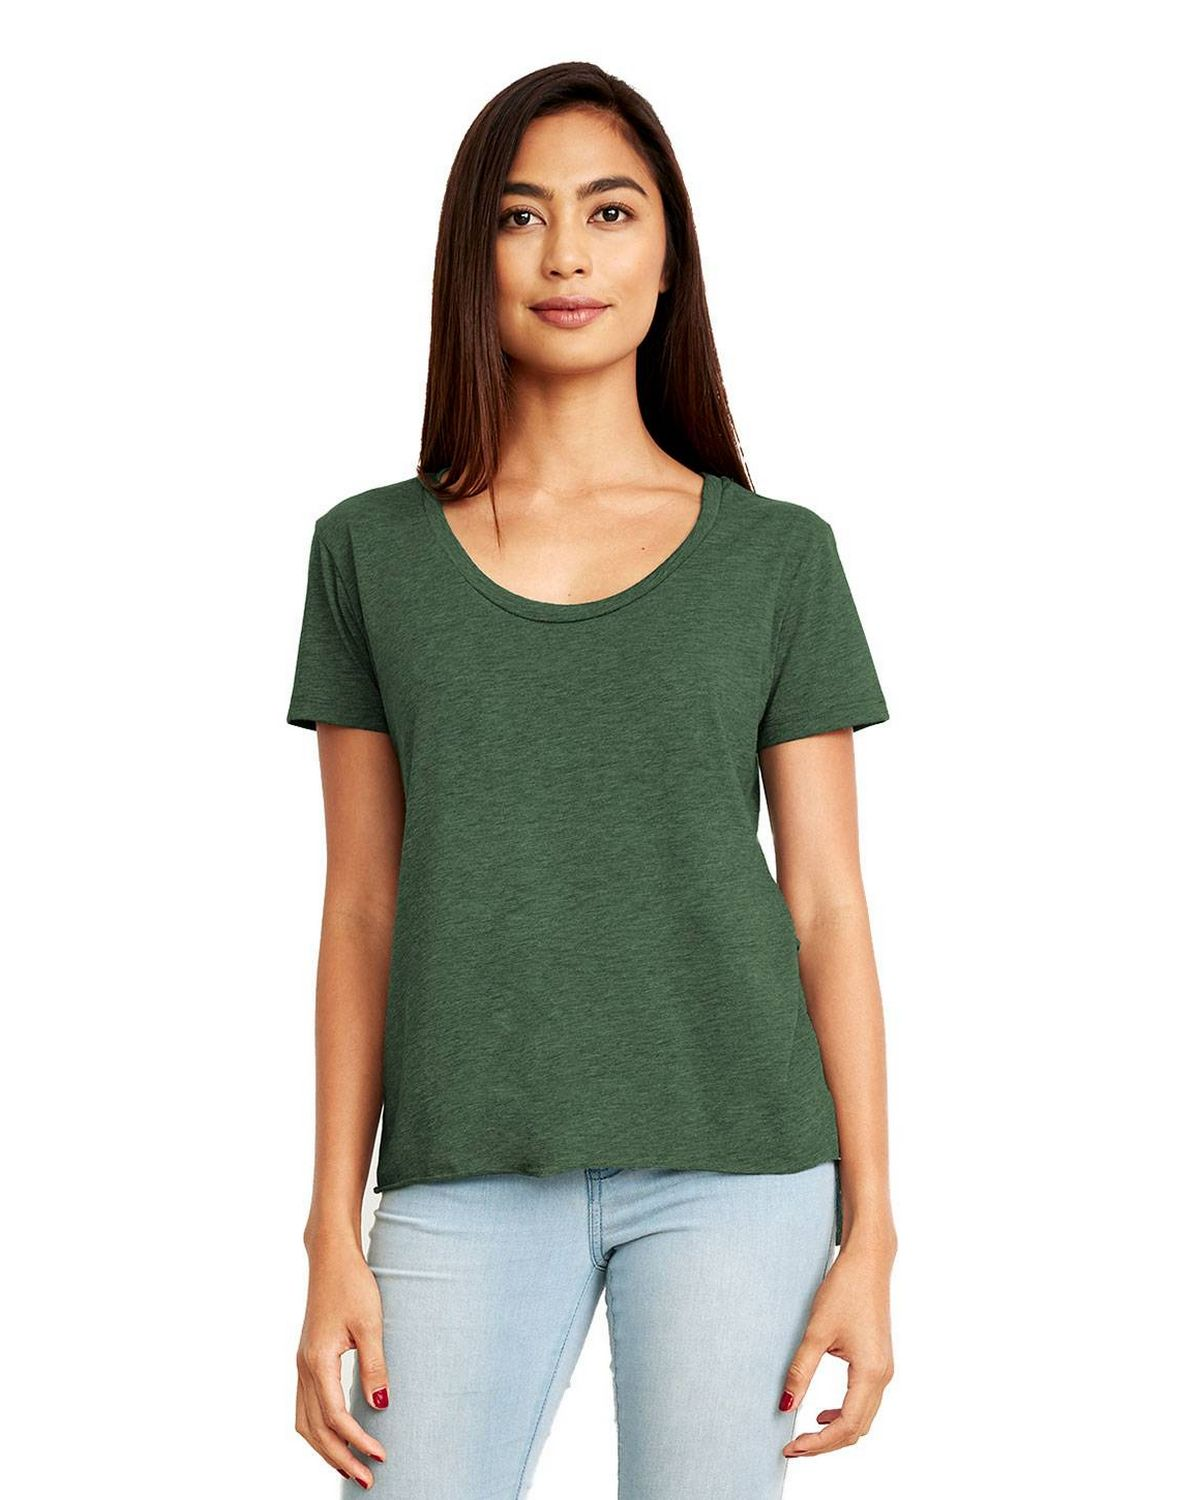 be69648f0 Next Level 5030 Ladies Festival Scoop Neck T-Shirt